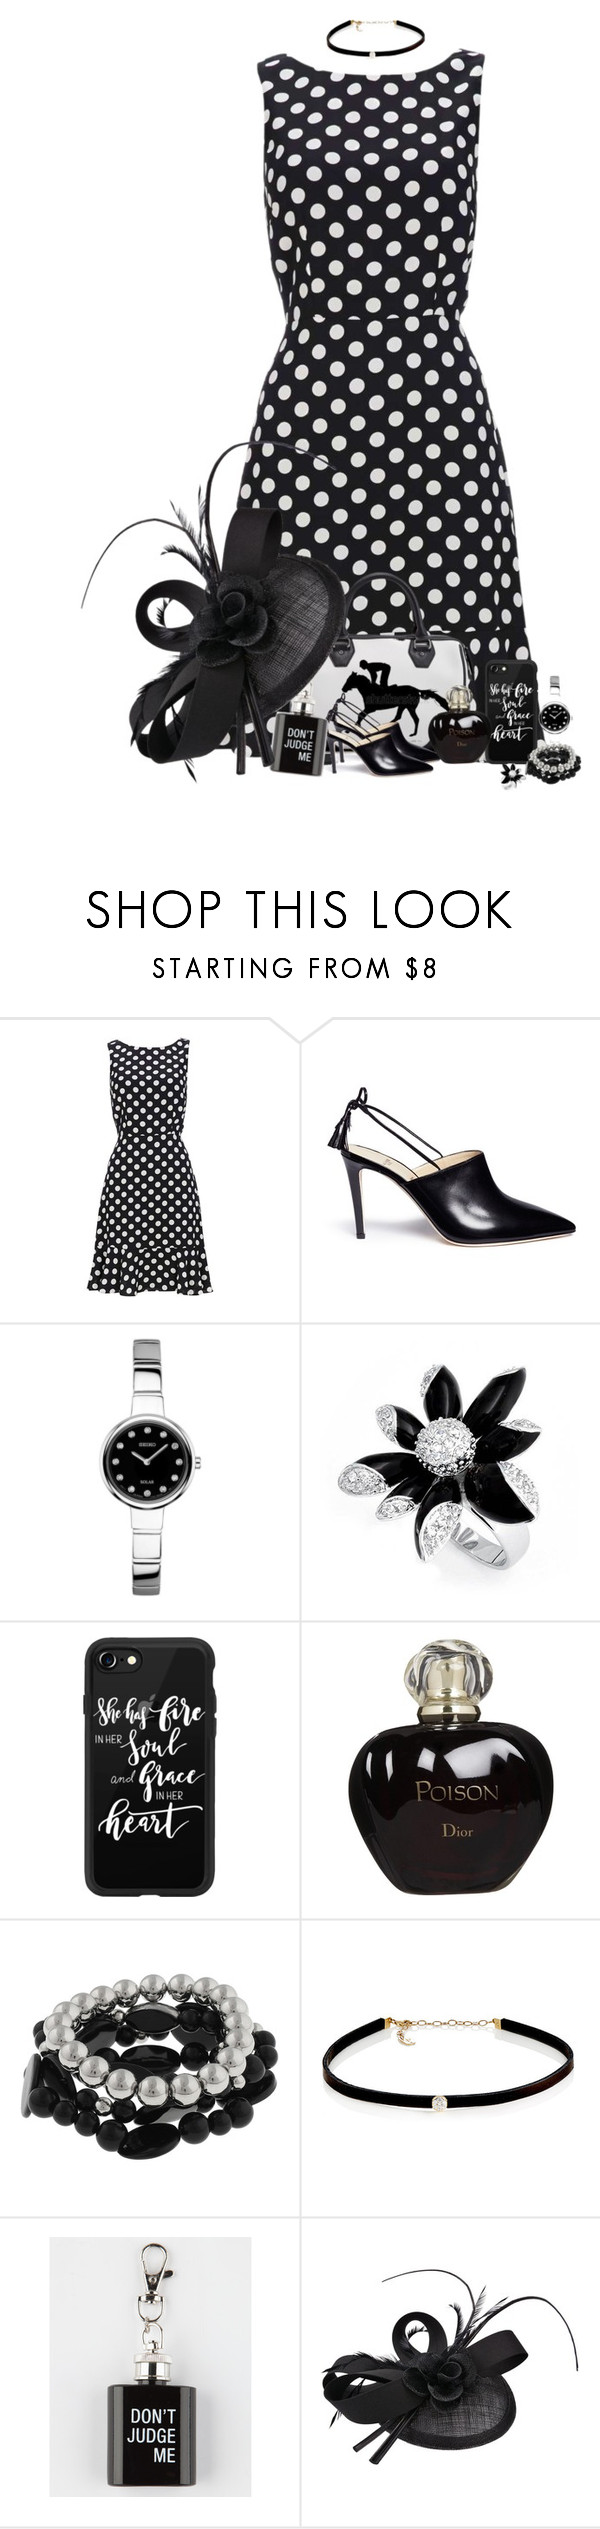 """""""Derby Ladies"""" by denisewood ❤ liked on Polyvore featuring Alexander White, Seiko, Bling Jewelry, Casetify, Christian Dior, Mixit and Carbon & Hyde"""